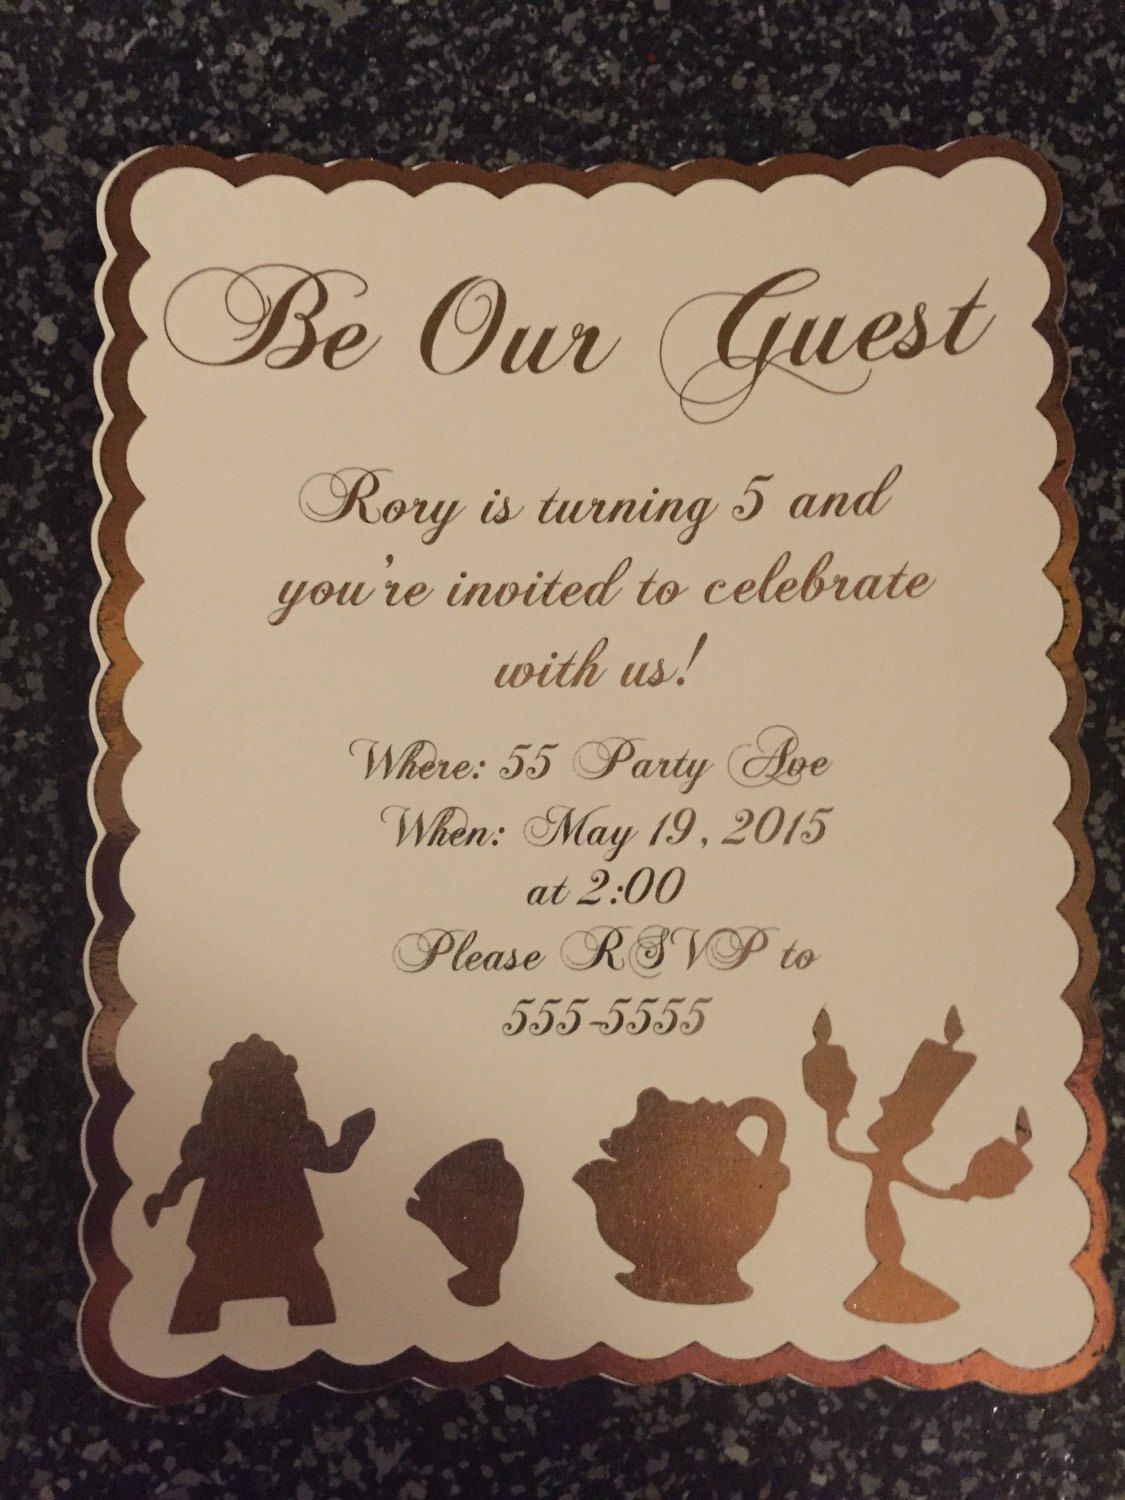 Beauty and the Beast invitations Be our guest invitiations by